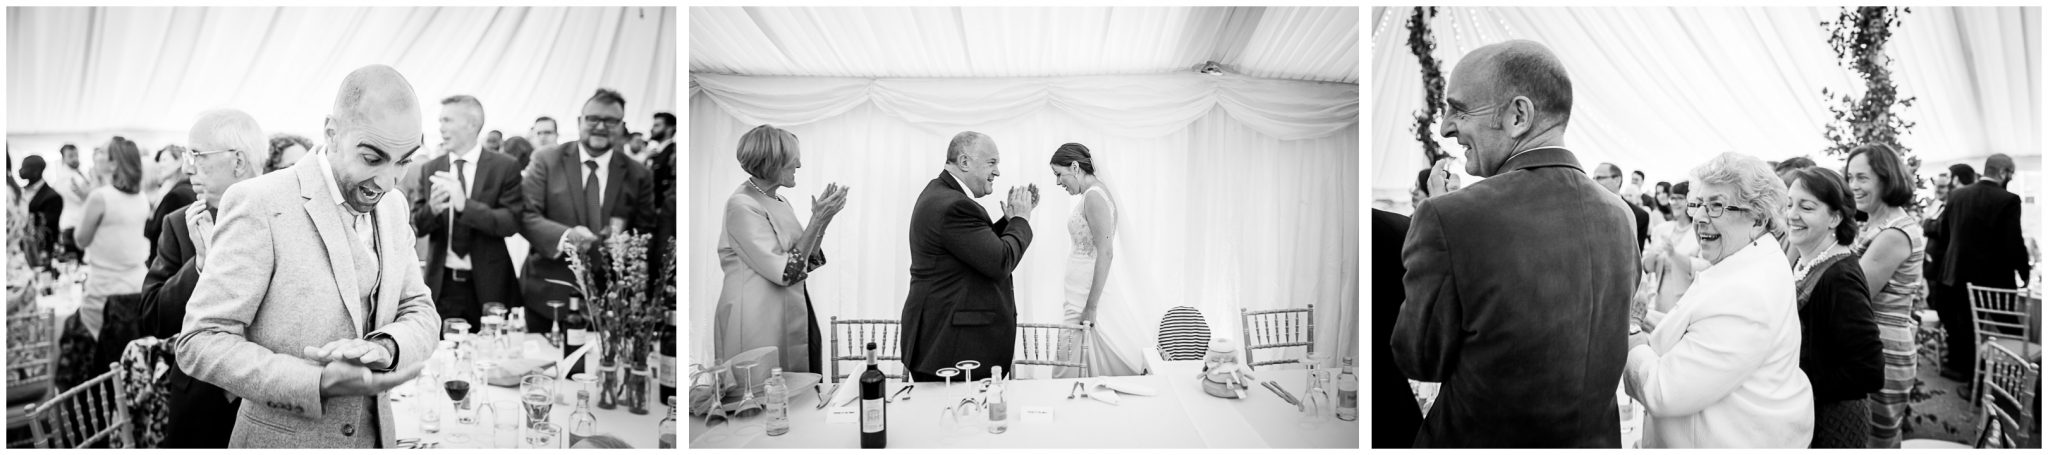 Old Alresford Place wedding photography start of reception